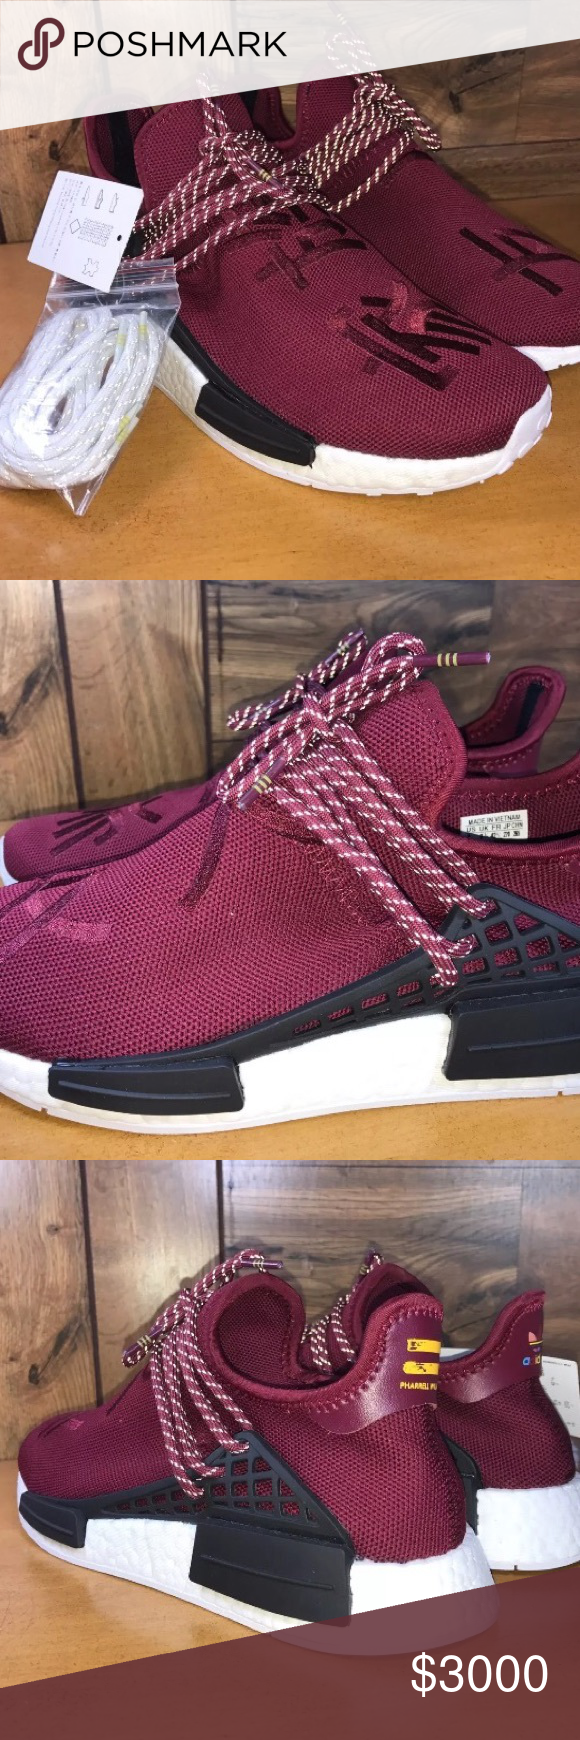 cd25c1102 Spotted while shopping on Poshmark  Adidas NMD Human Race Friends   Family  Size 11!  poshmark  fashion  shopping  style  Adidas  Other